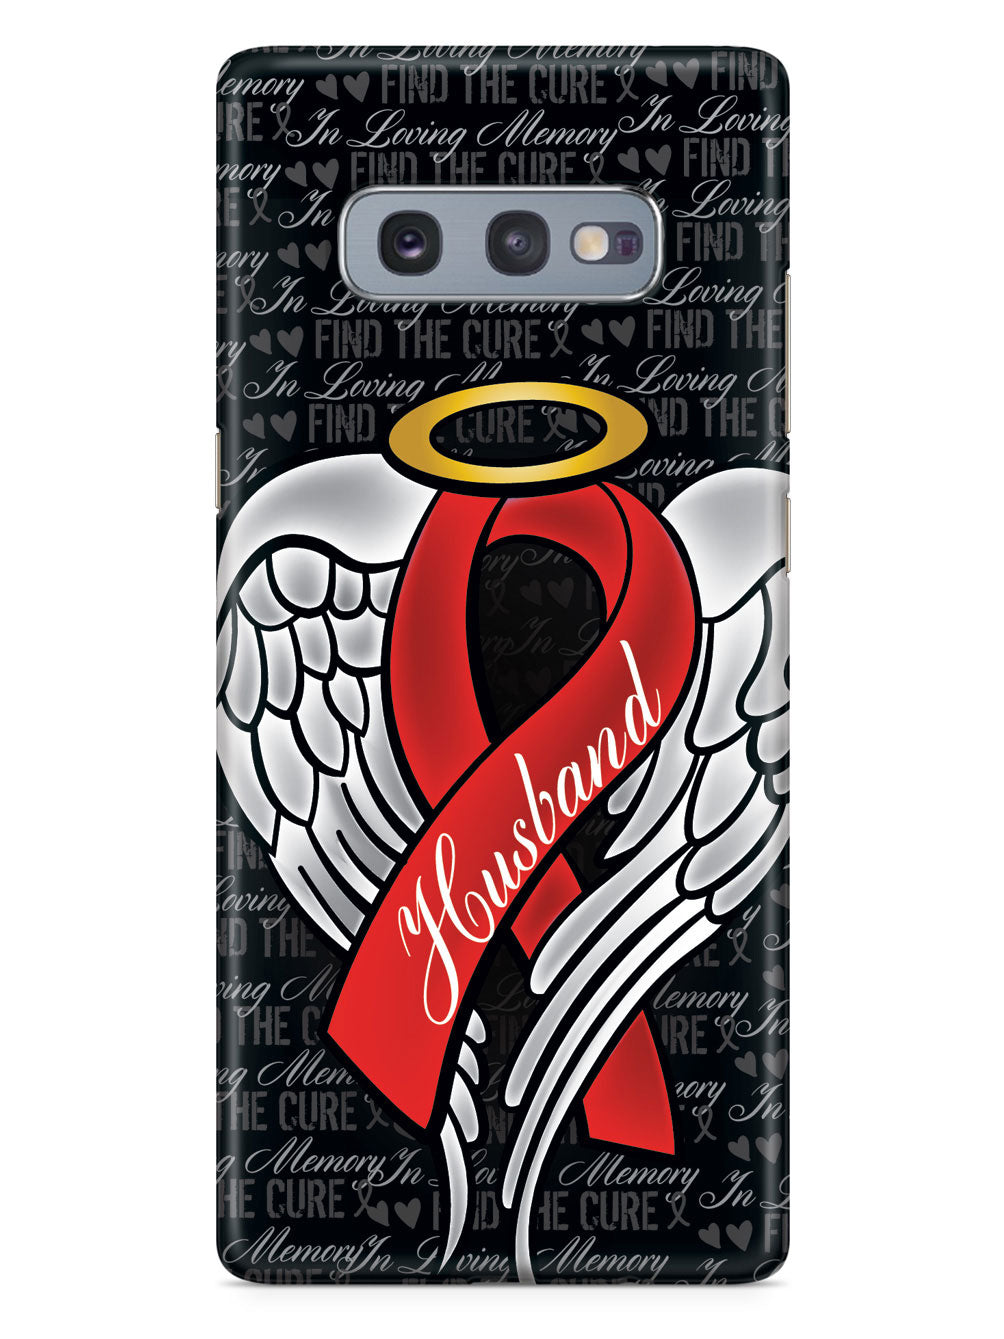 In Loving Memory of My Husband - Red Ribbon Case